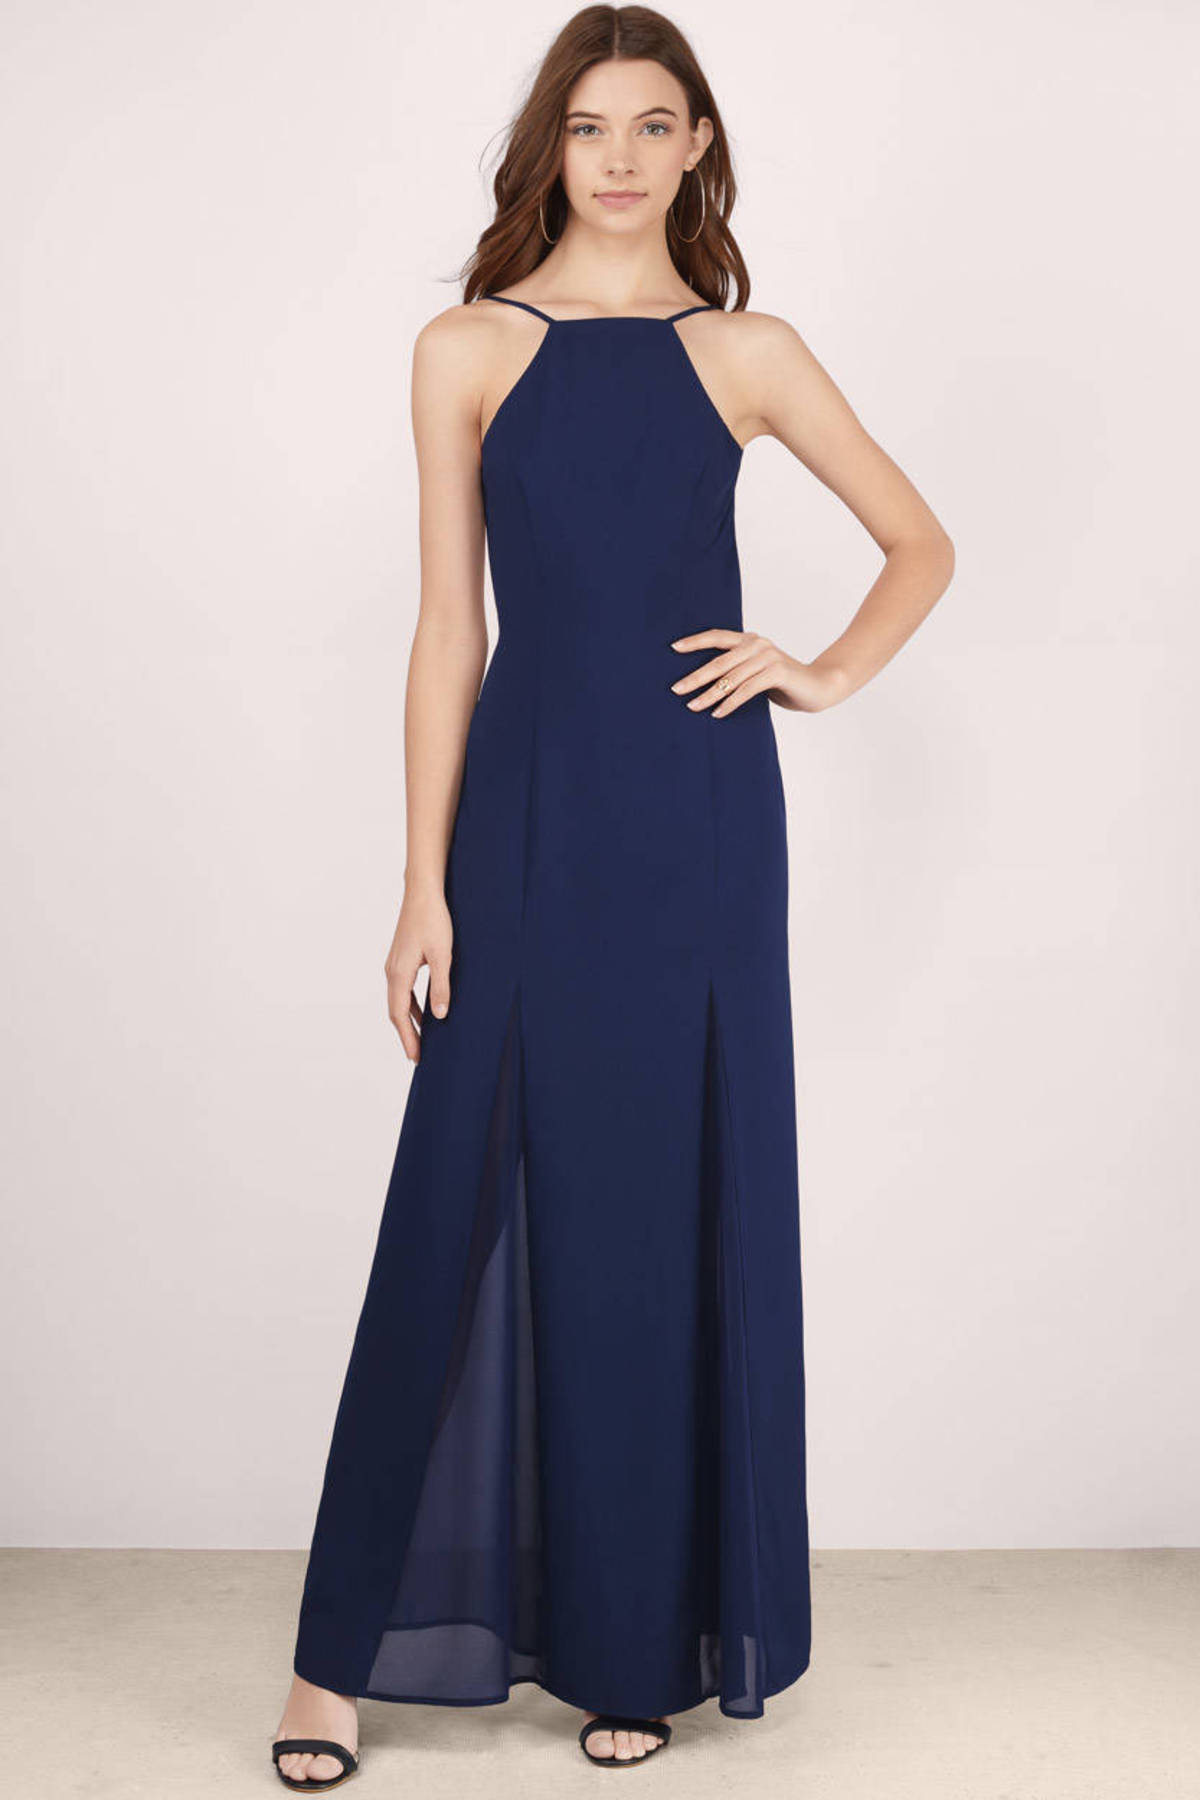 Navy Maxi Dress - Blue Dress - Chiffon Dress - $24.00